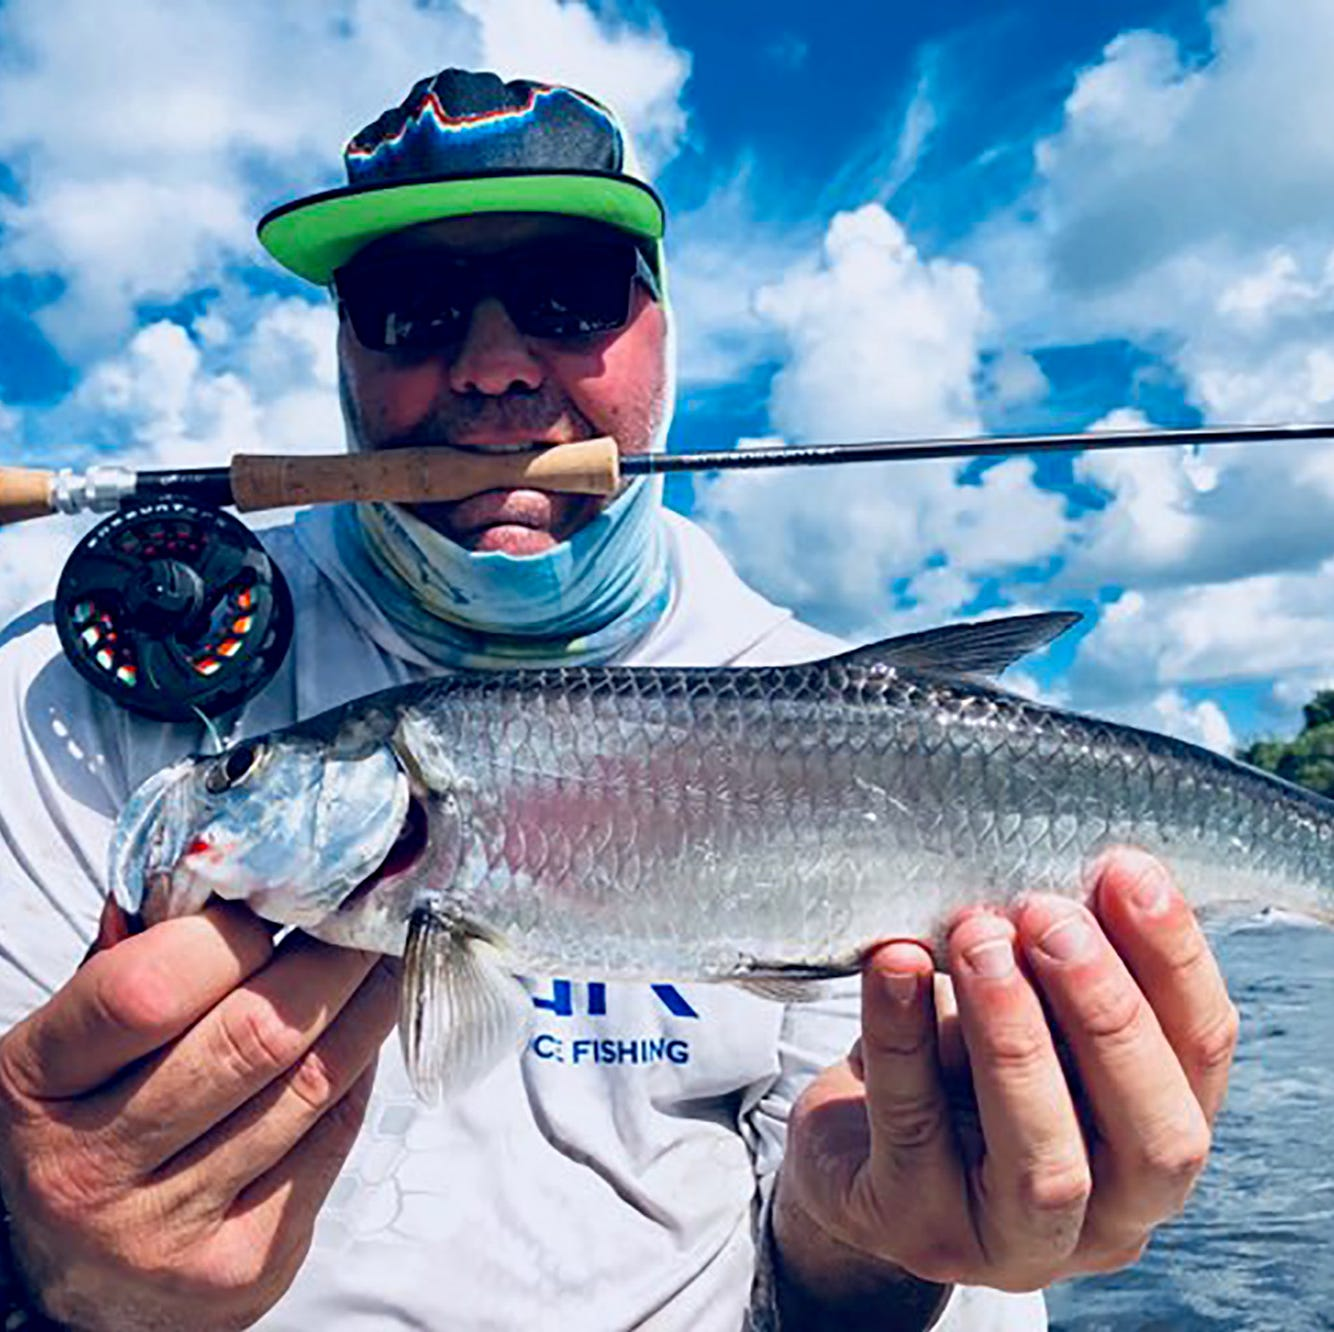 Fishingcast: Conditions for Southwest Florida, Oct. 3-11